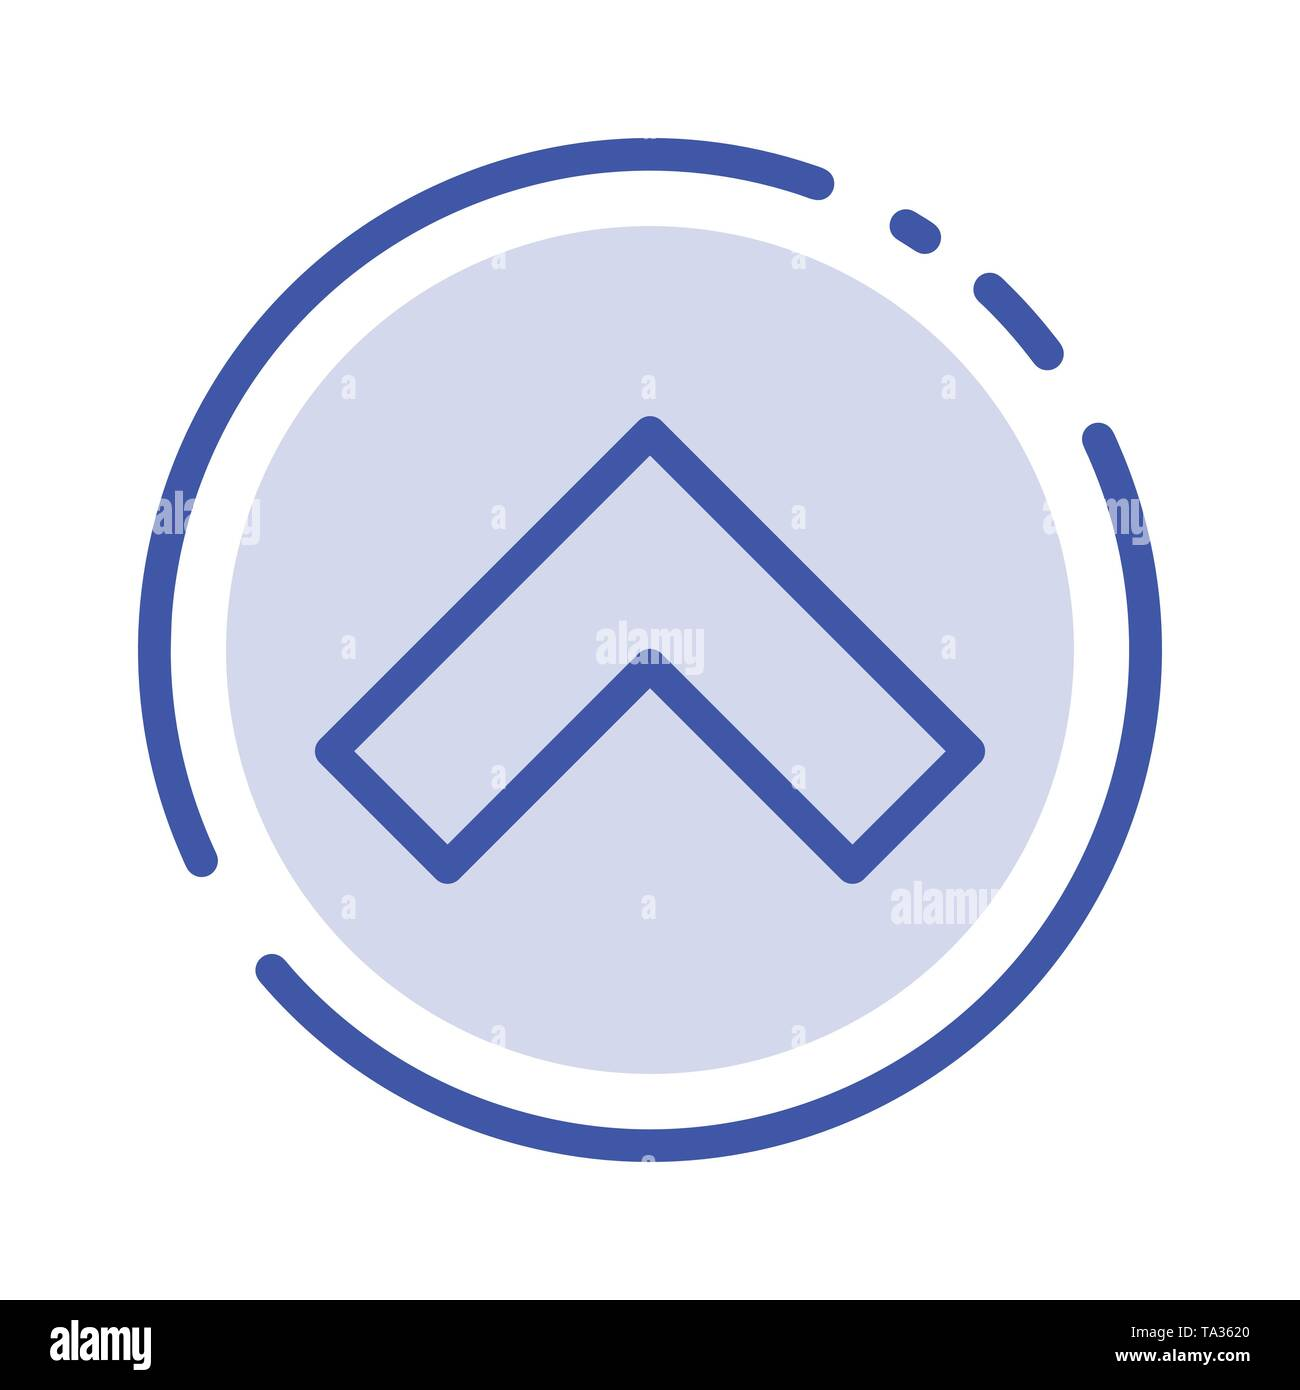 Arrow, Up, Forward Blue Dotted Line Line Icon - Stock Image